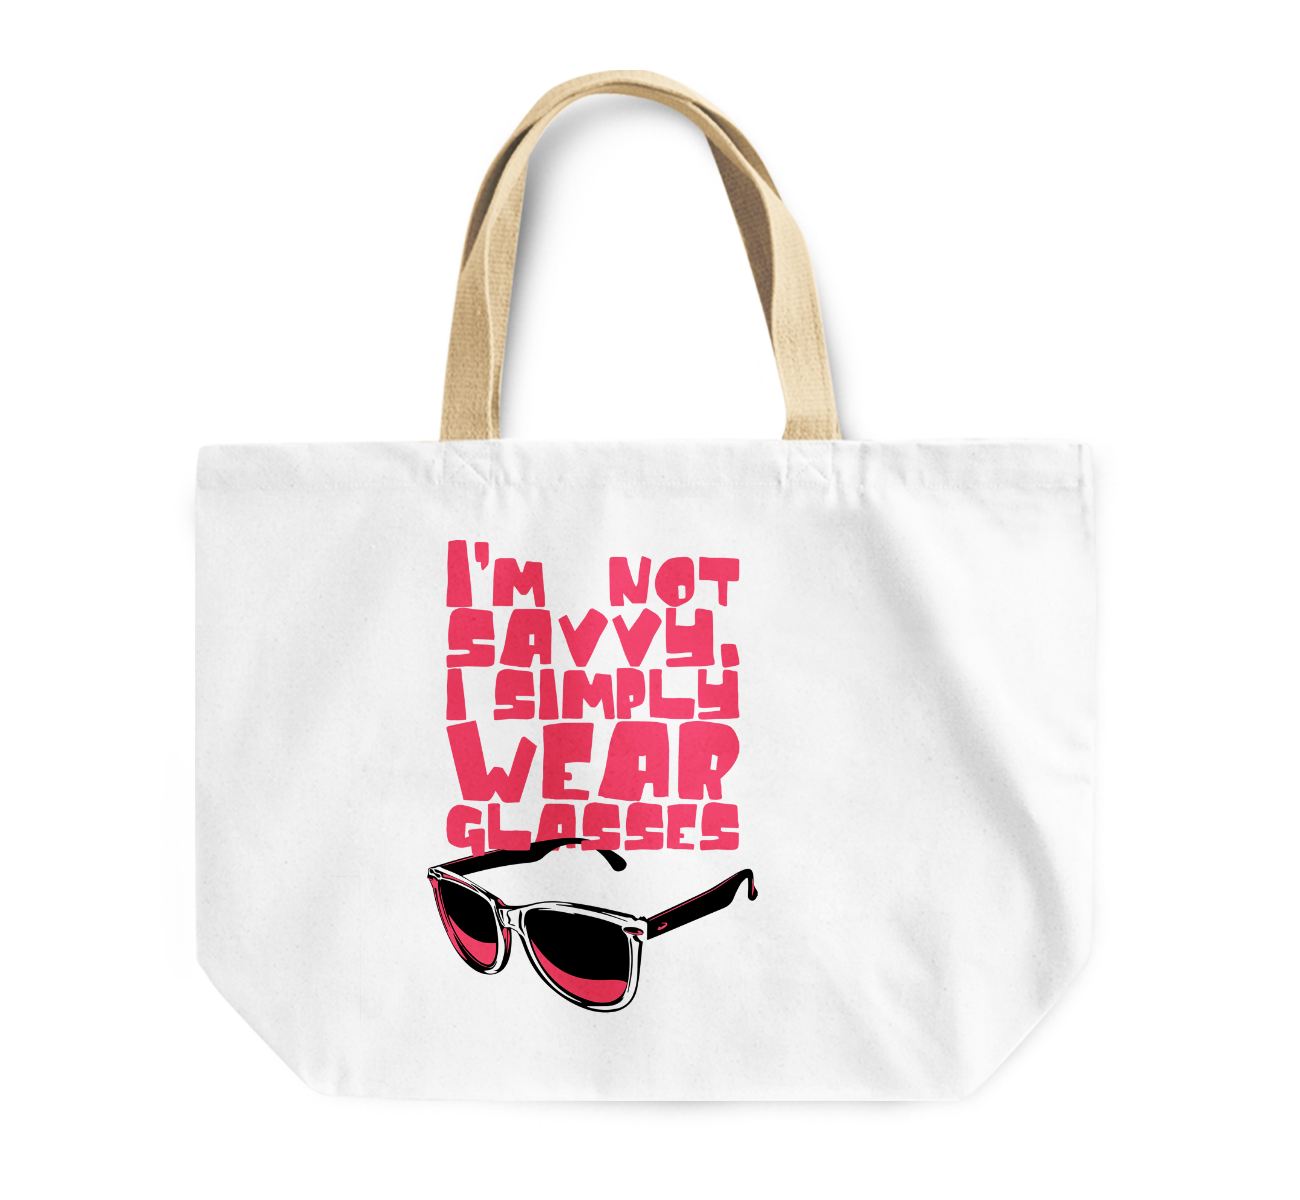 Tote Bag i Am Very Savvy Wear Shades Sunglasses Funny Reusable Shopping Bag For Teens By Loud Universe